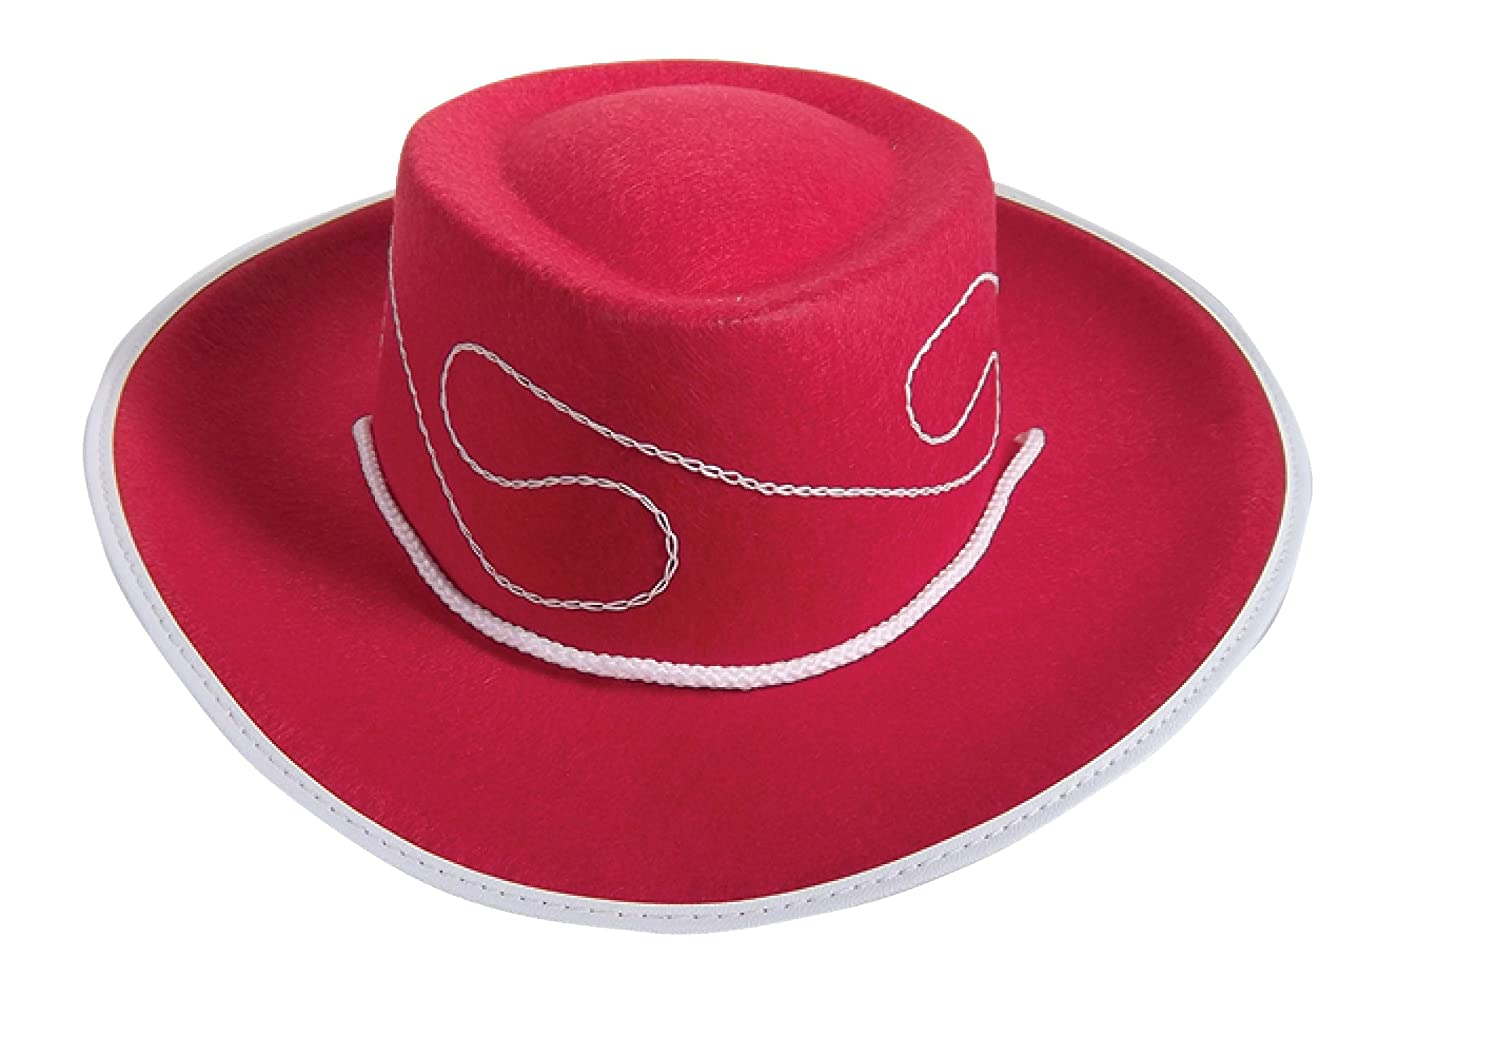 Large Jacobson Hat Company Jacobson Hat Company Childs Embroidered Permafelt Cowboy Costume Red toys F10183 REDL